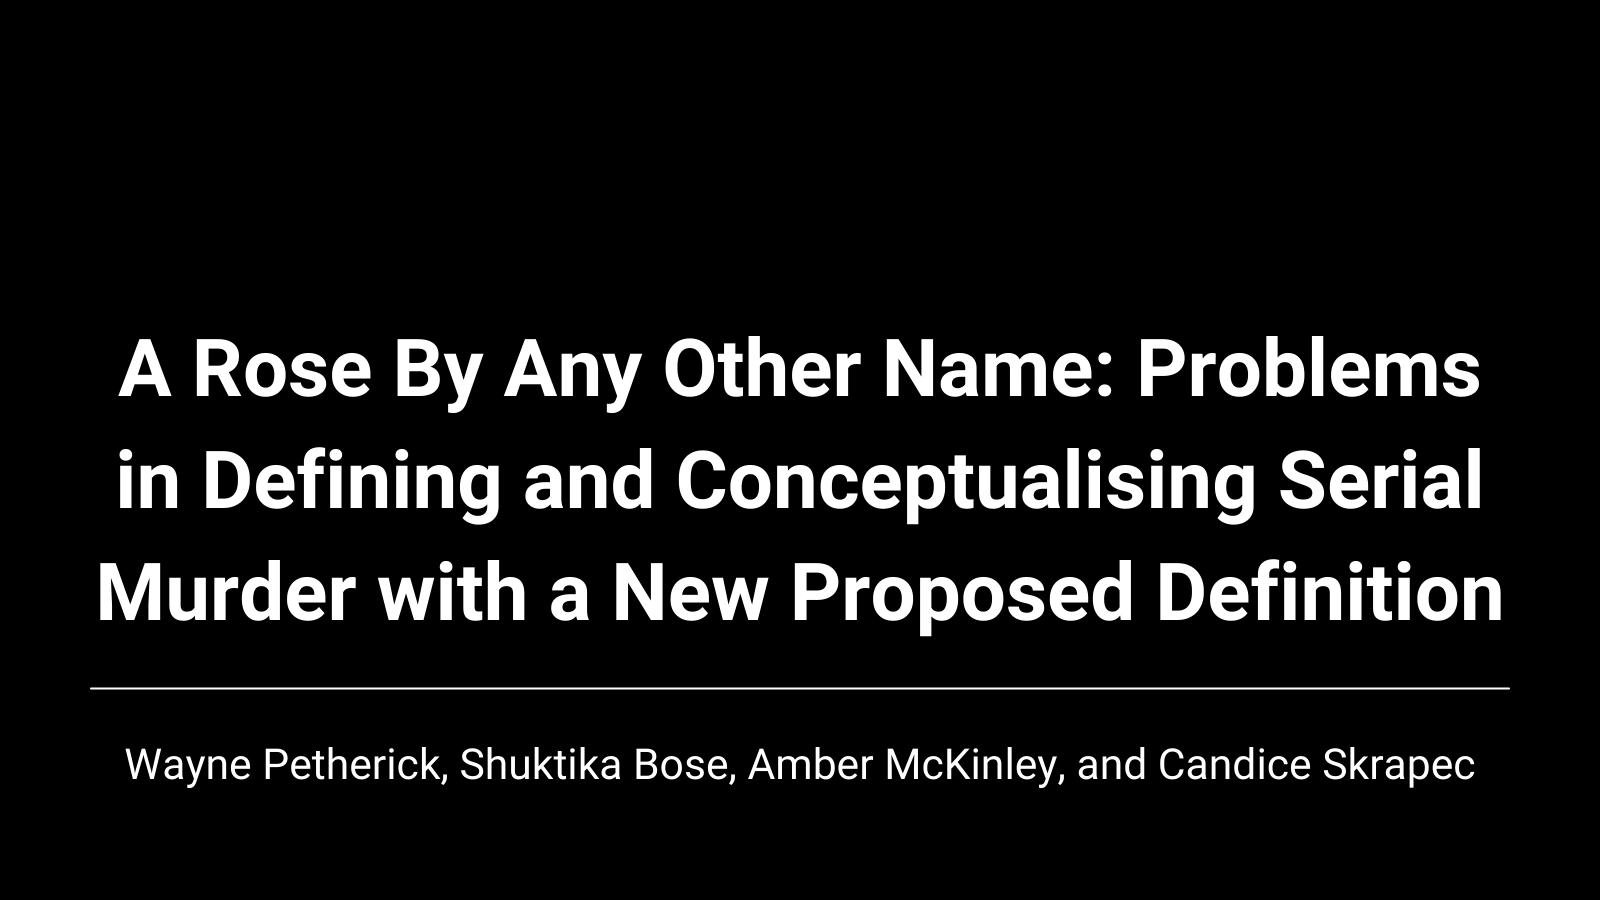 A Rose By Any Other Name: Problems in Defining and Conceptualising Serial Murder with a New Proposed Definition